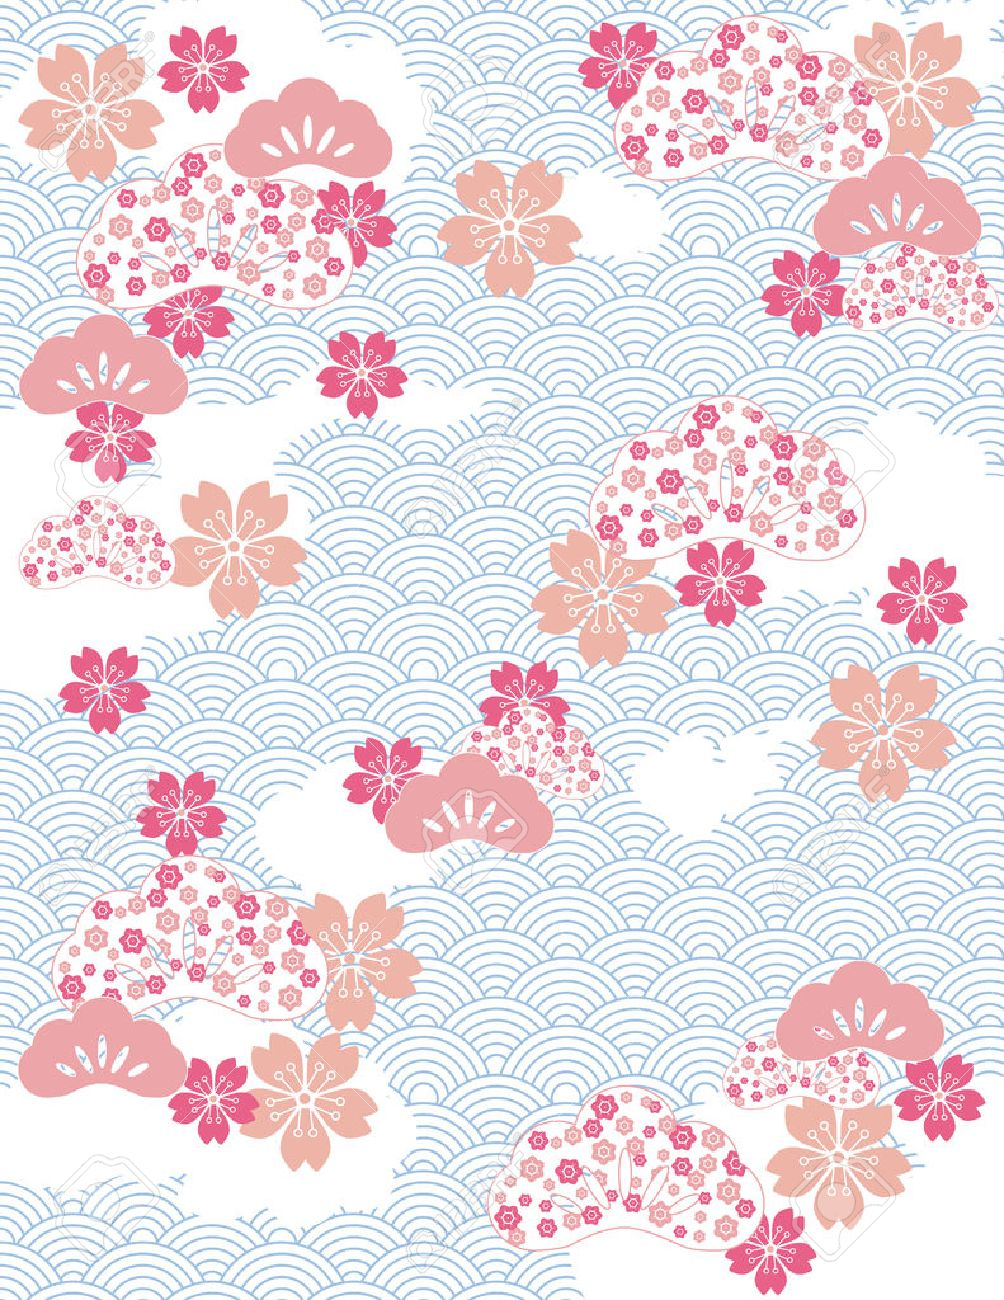 Japanese background with wave pattern and cherry blossom flowers japanese background with wave pattern and cherry blossom flowers stock vector 34317359 mightylinksfo